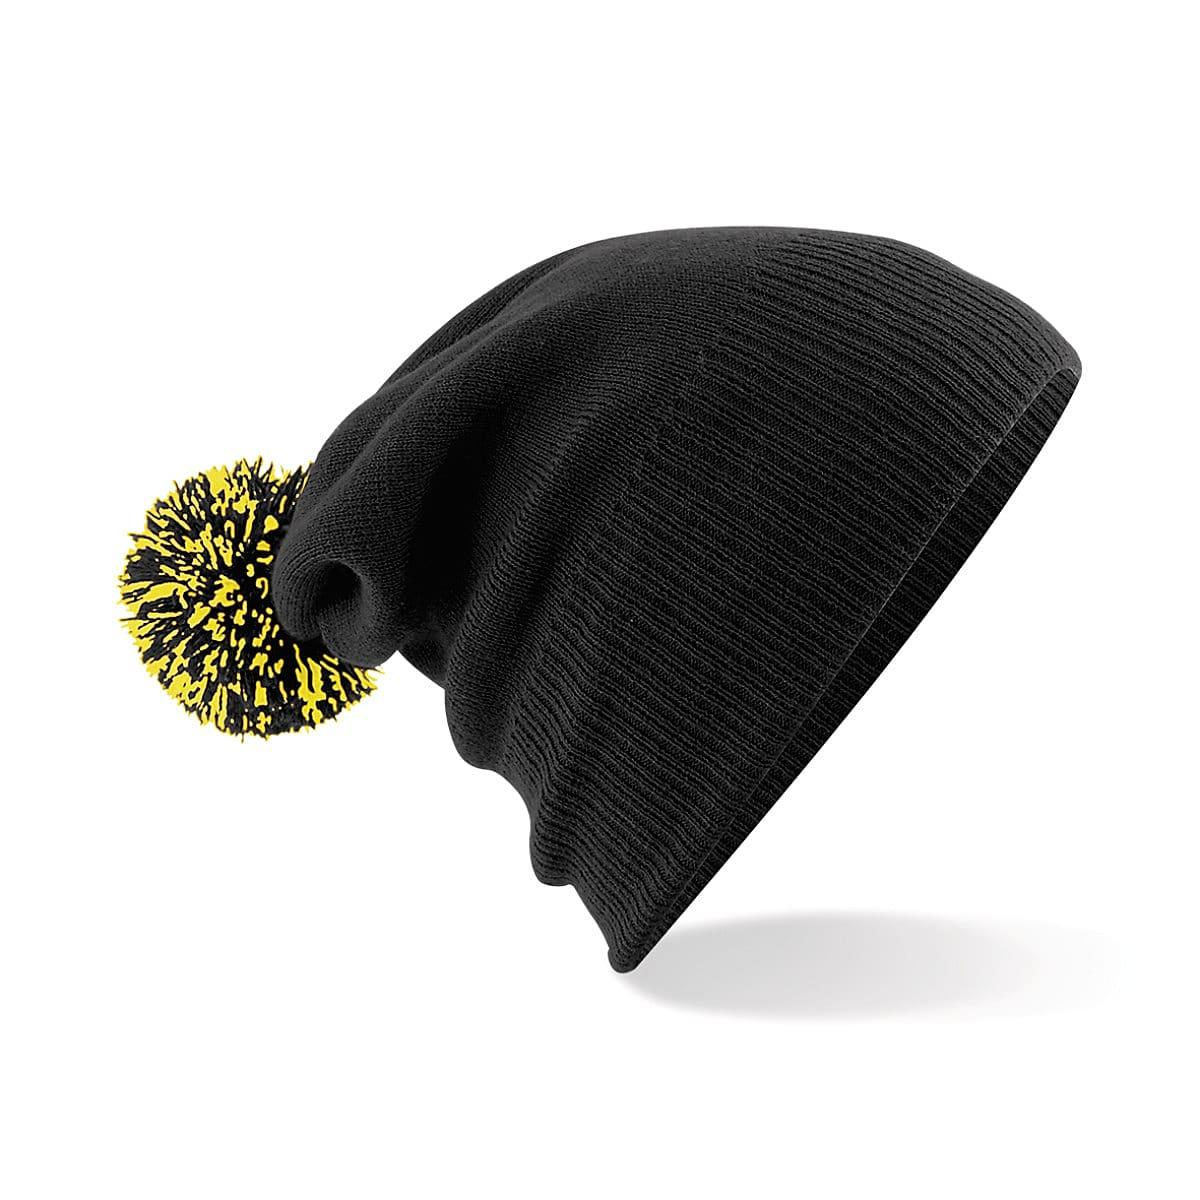 Beechfield Snowstar Beanie Hat in Black / Yellow (Product Code: B450)